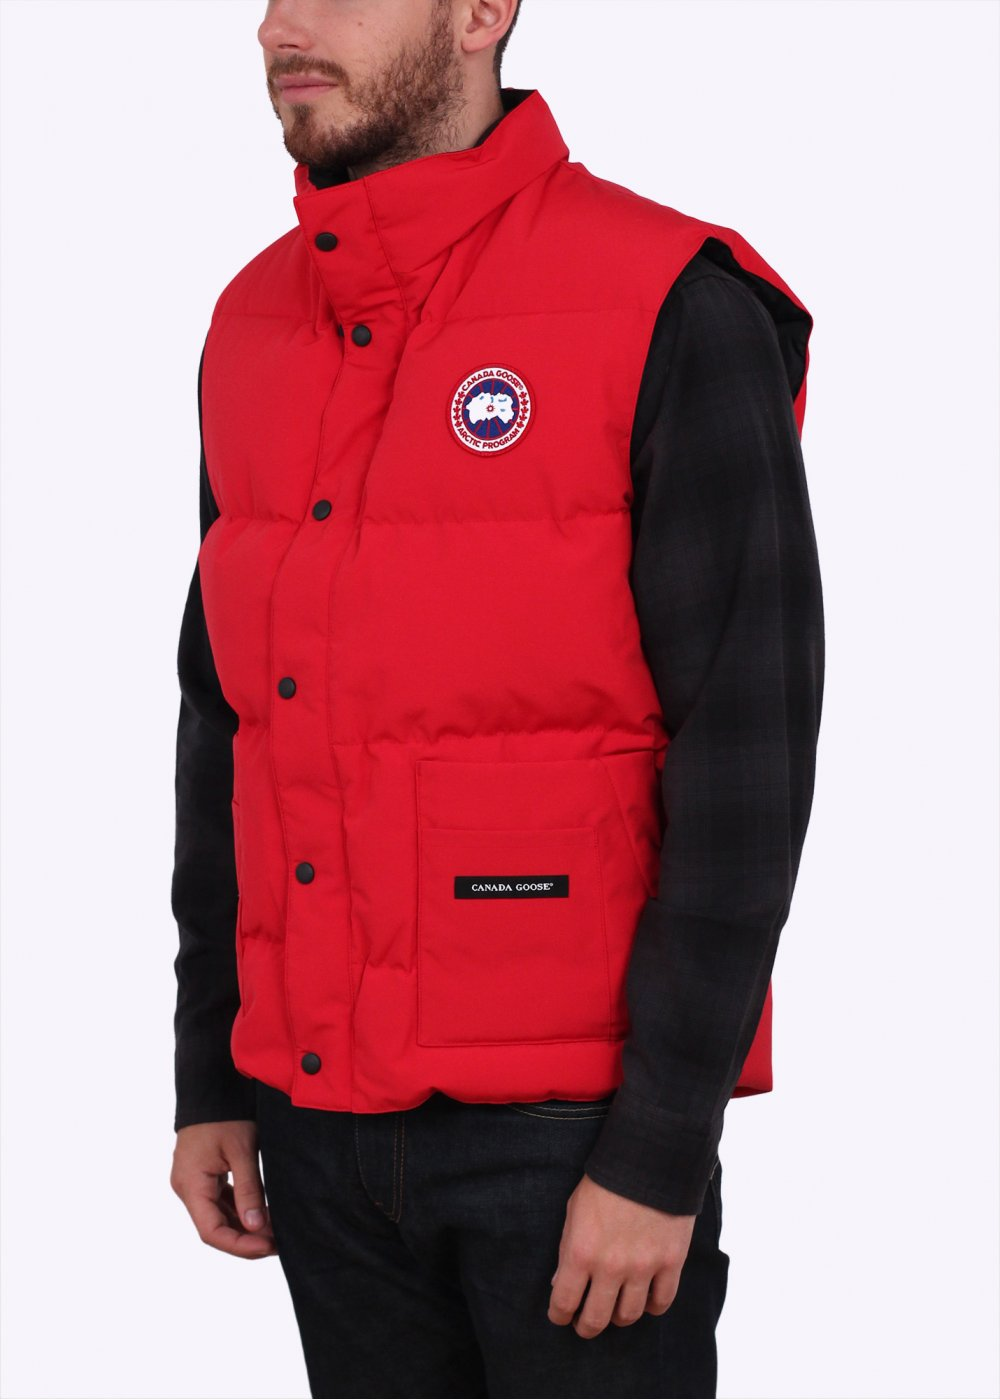 Canada Goose' Freestyle Down Vest - Men's Red, M